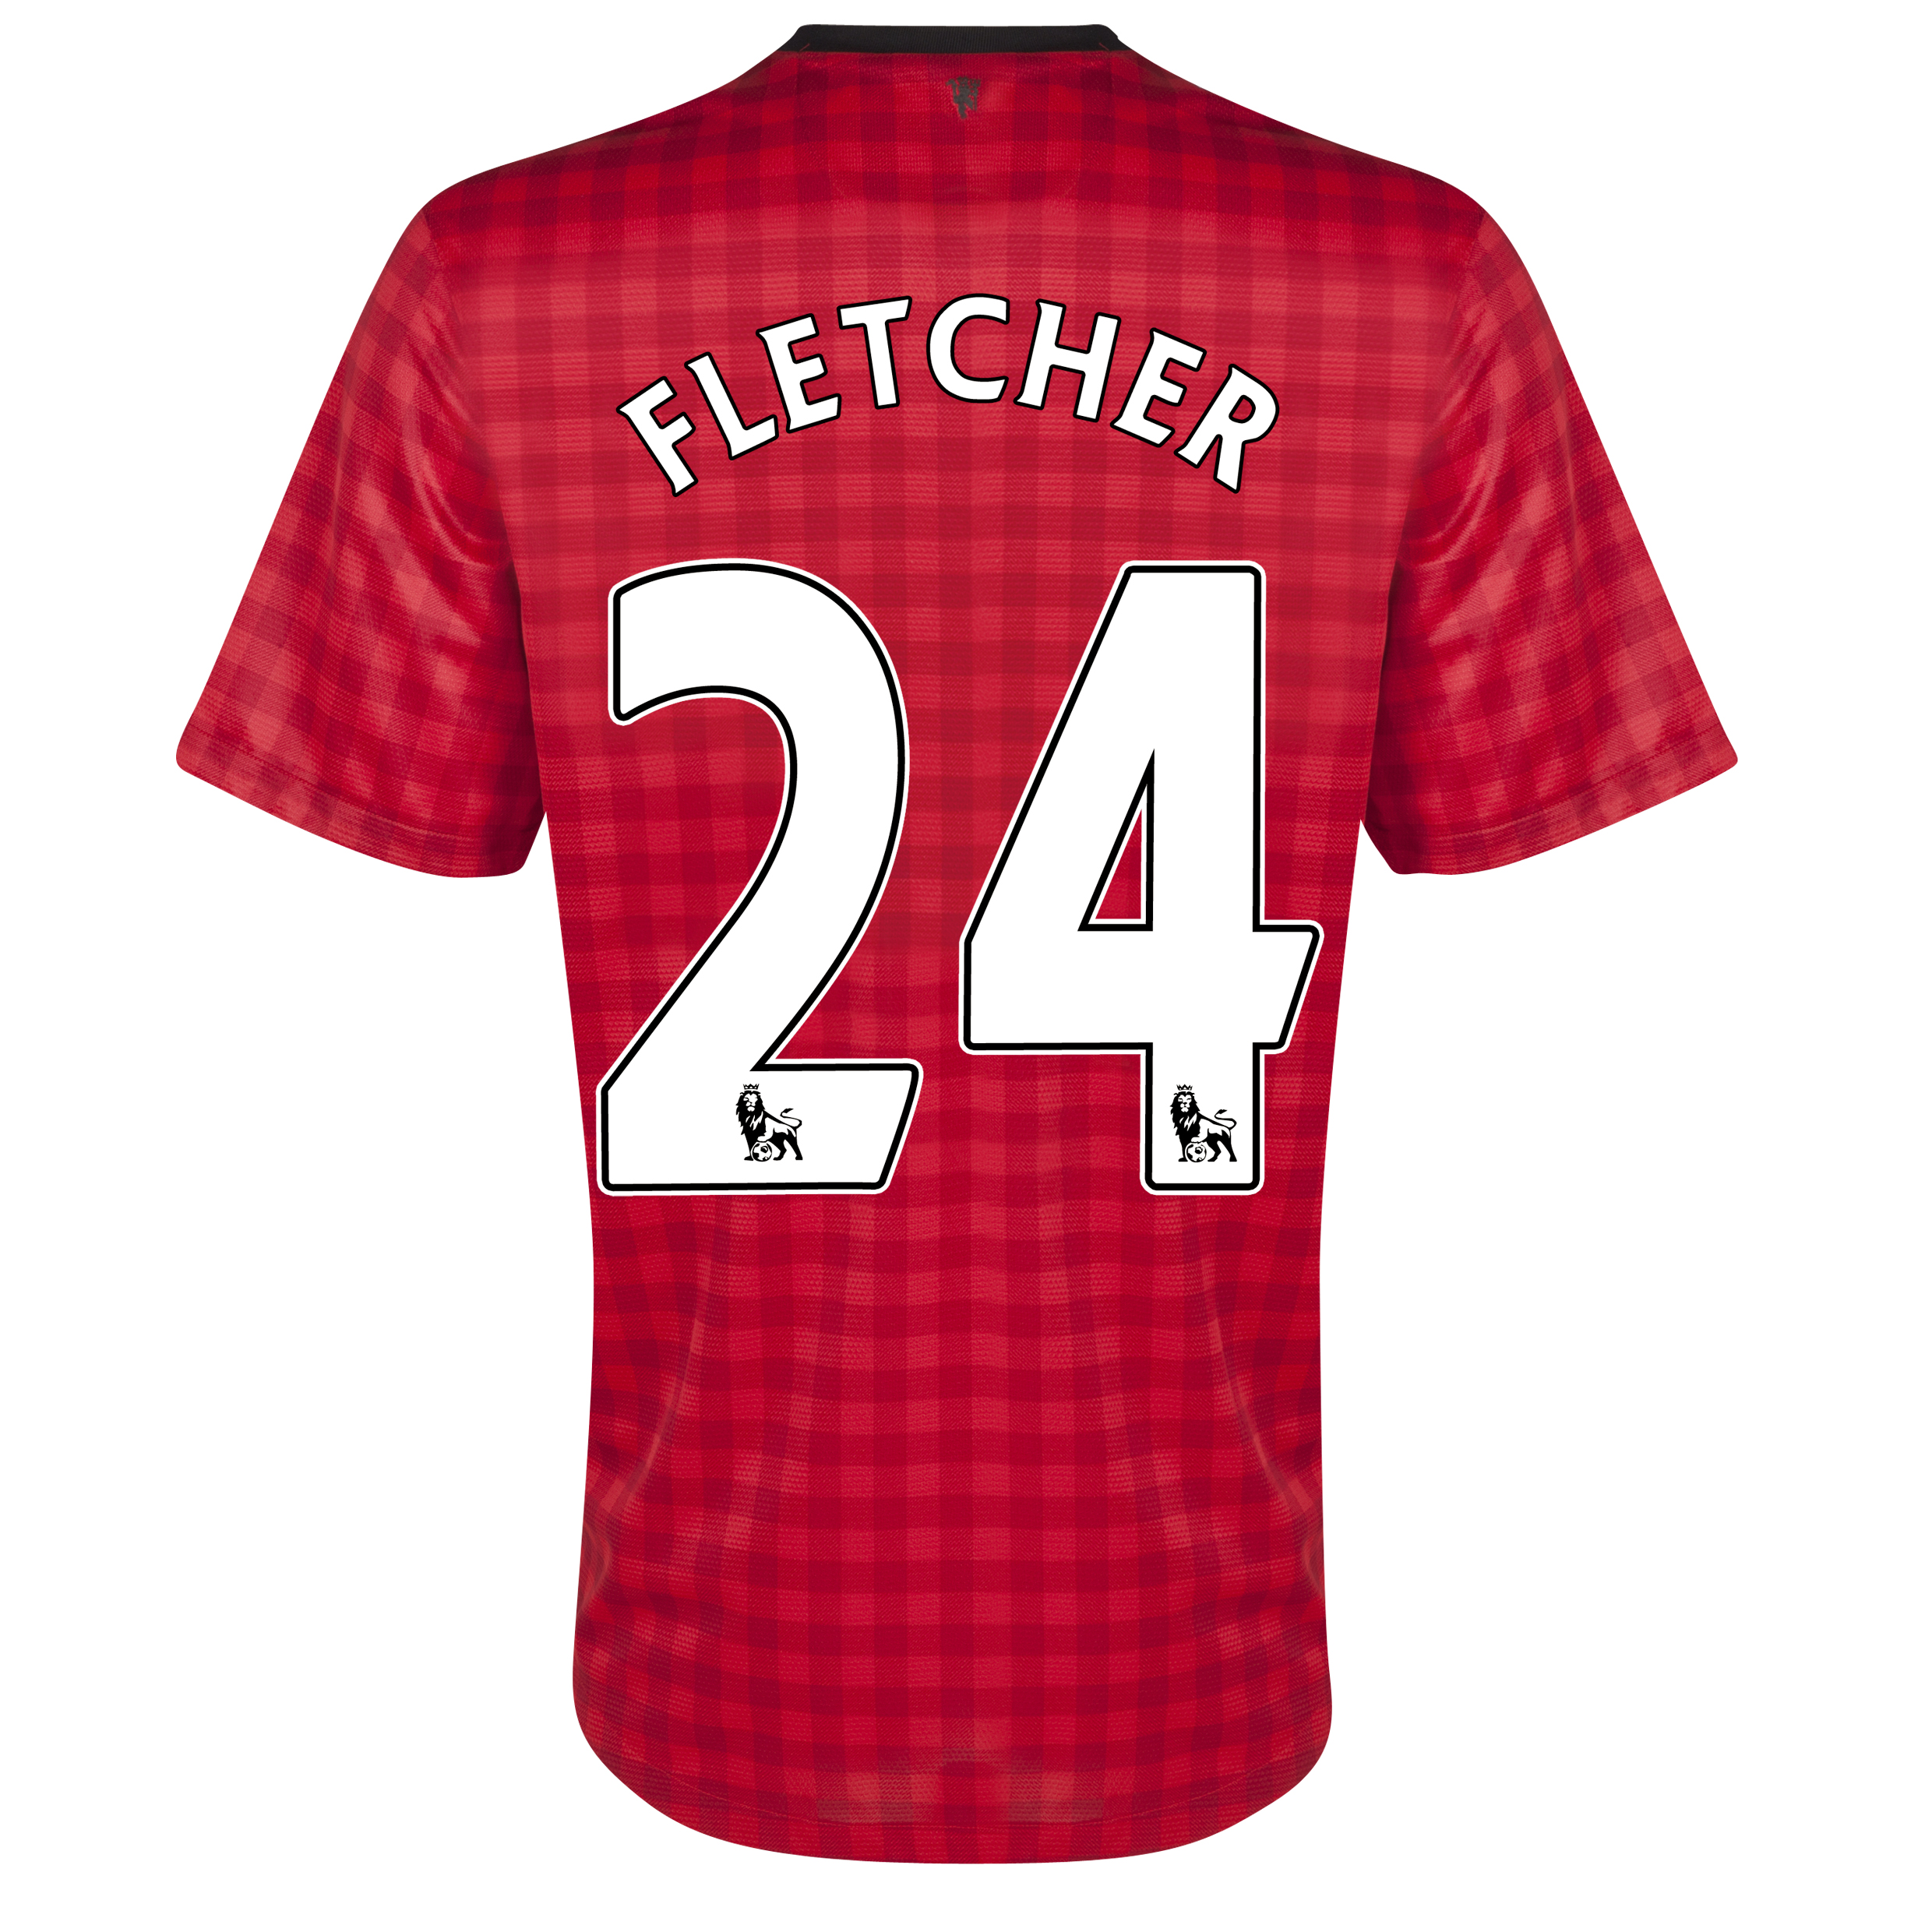 Manchester United Home Shirt 2012/13  - Youths with Fletcher 24 printing